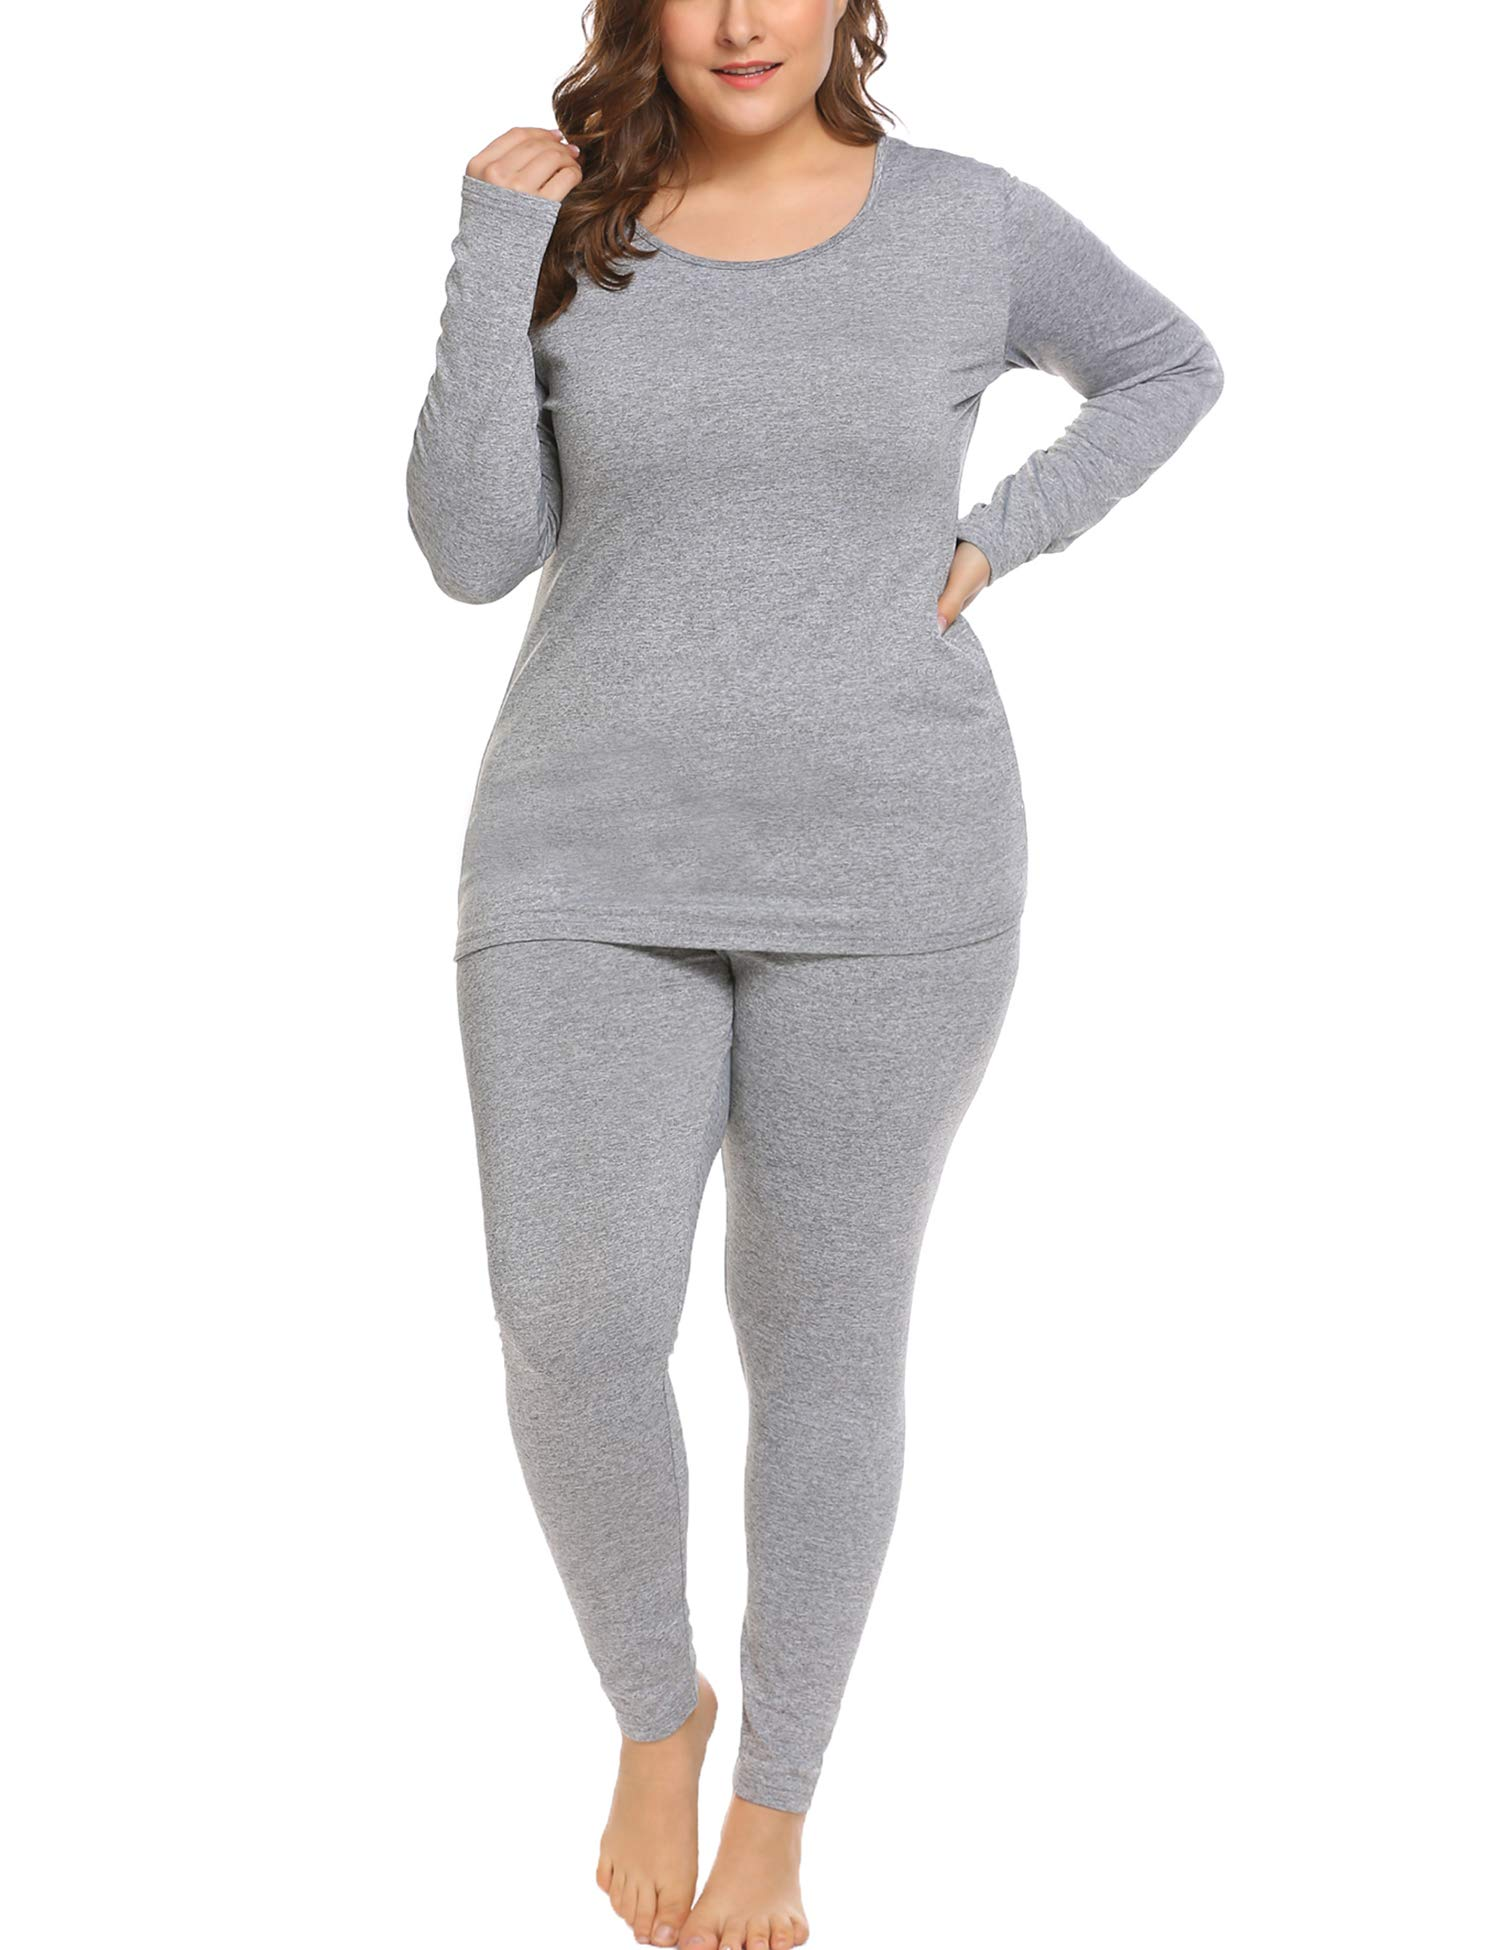 In'voland Women's Thermal Underwear Set Top & Bottom Fleece Lined Grey 24W by IN'VOLAND